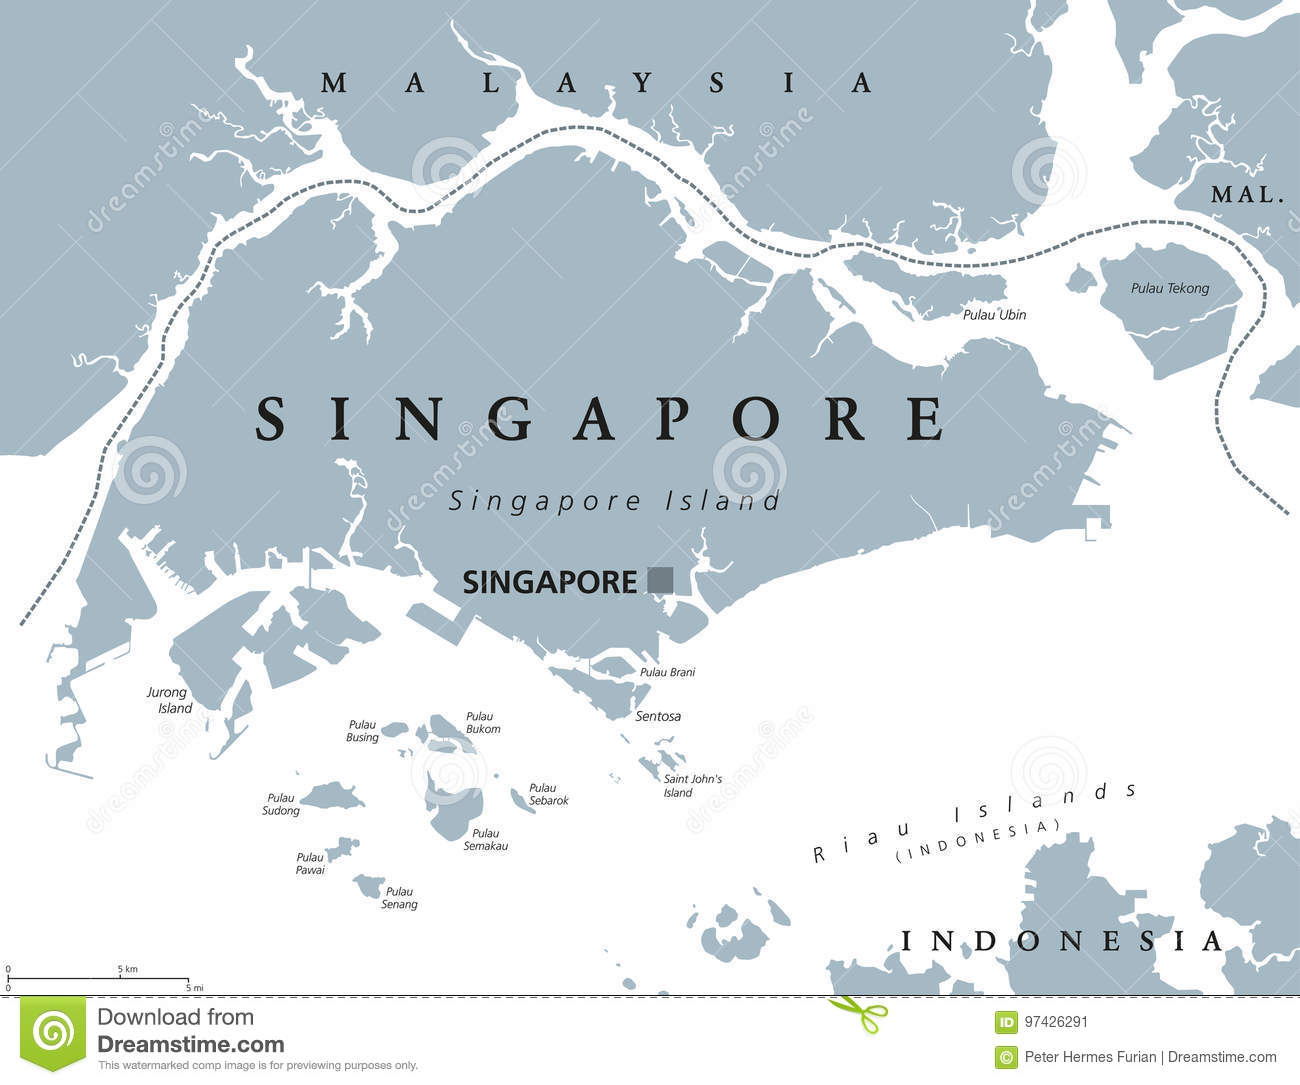 Asia Map Singapore.Singapore Political Map Stock Vector Illustration Of Sentosa 97426291